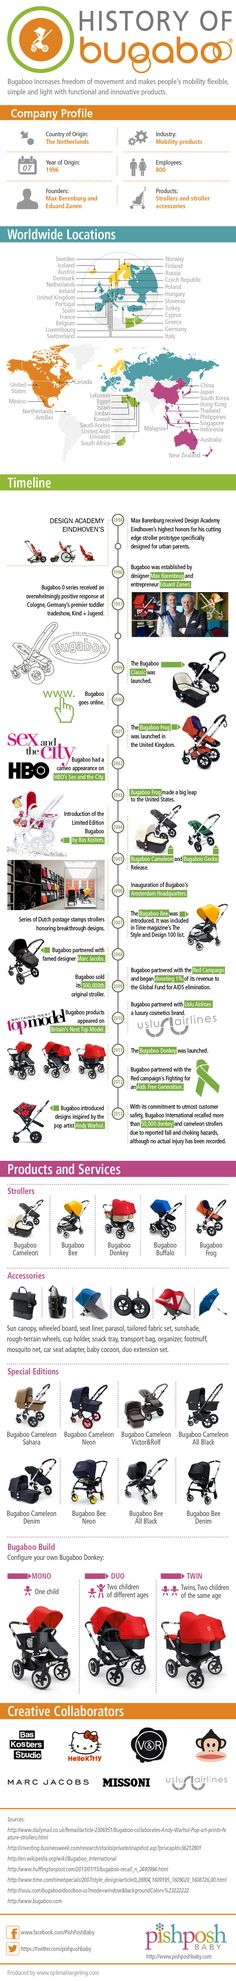 The History Of Bugaboo